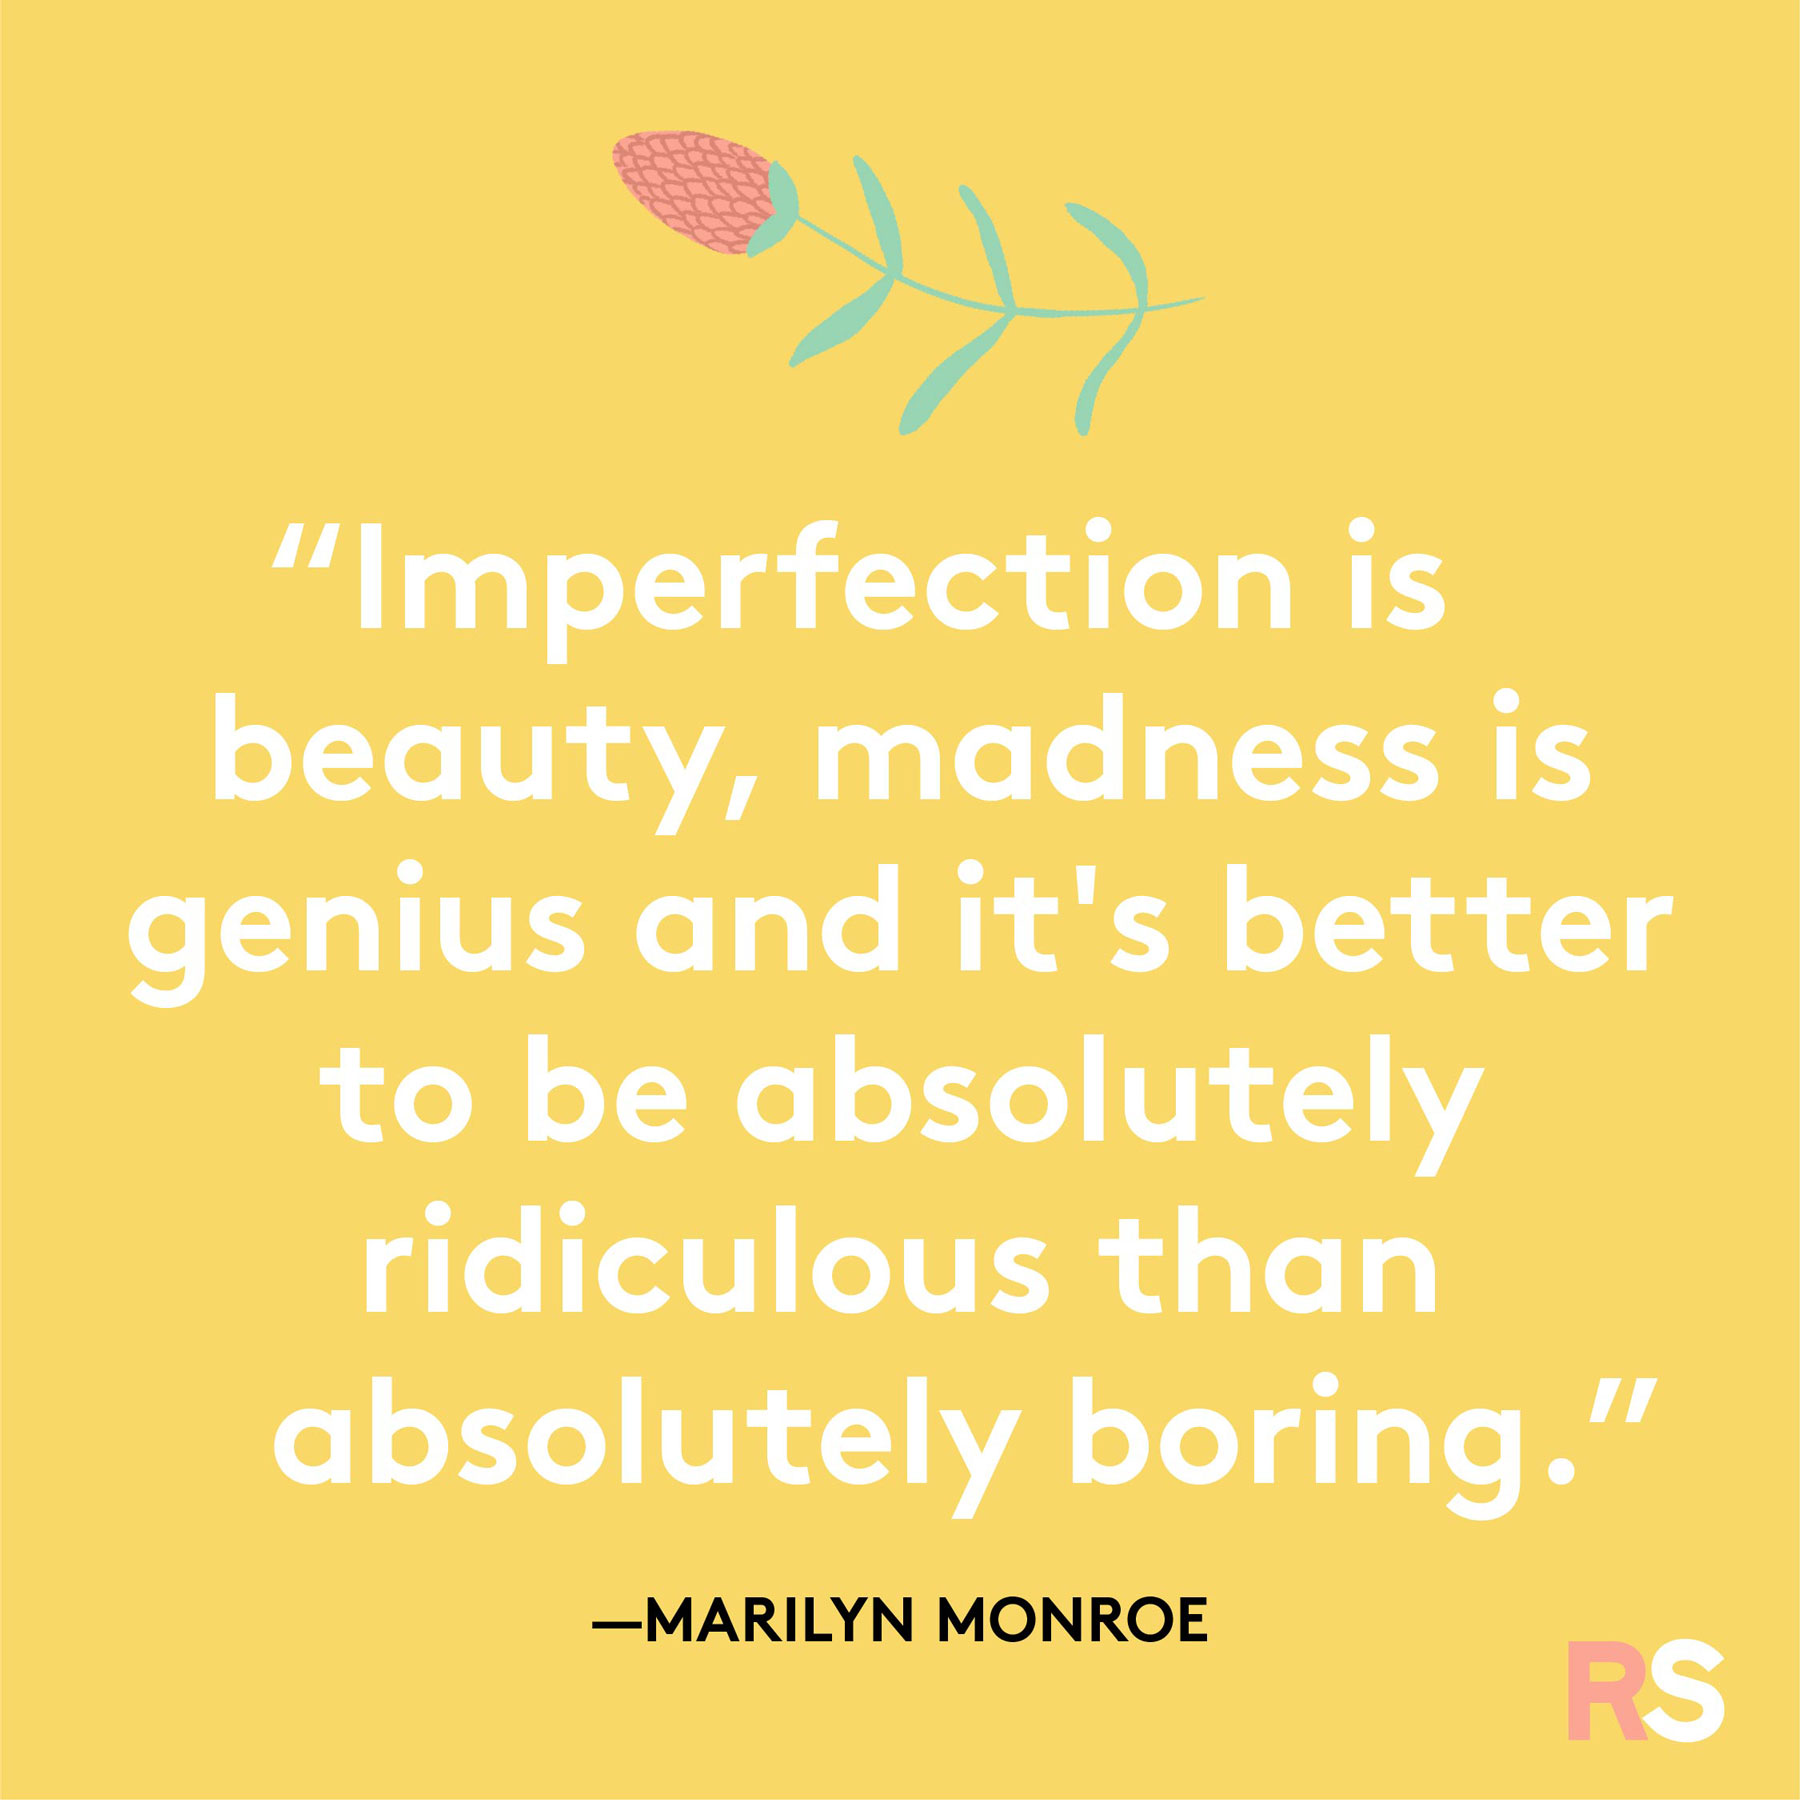 Positive motivating quotes, captions, messages – Marilyn Monroe quote